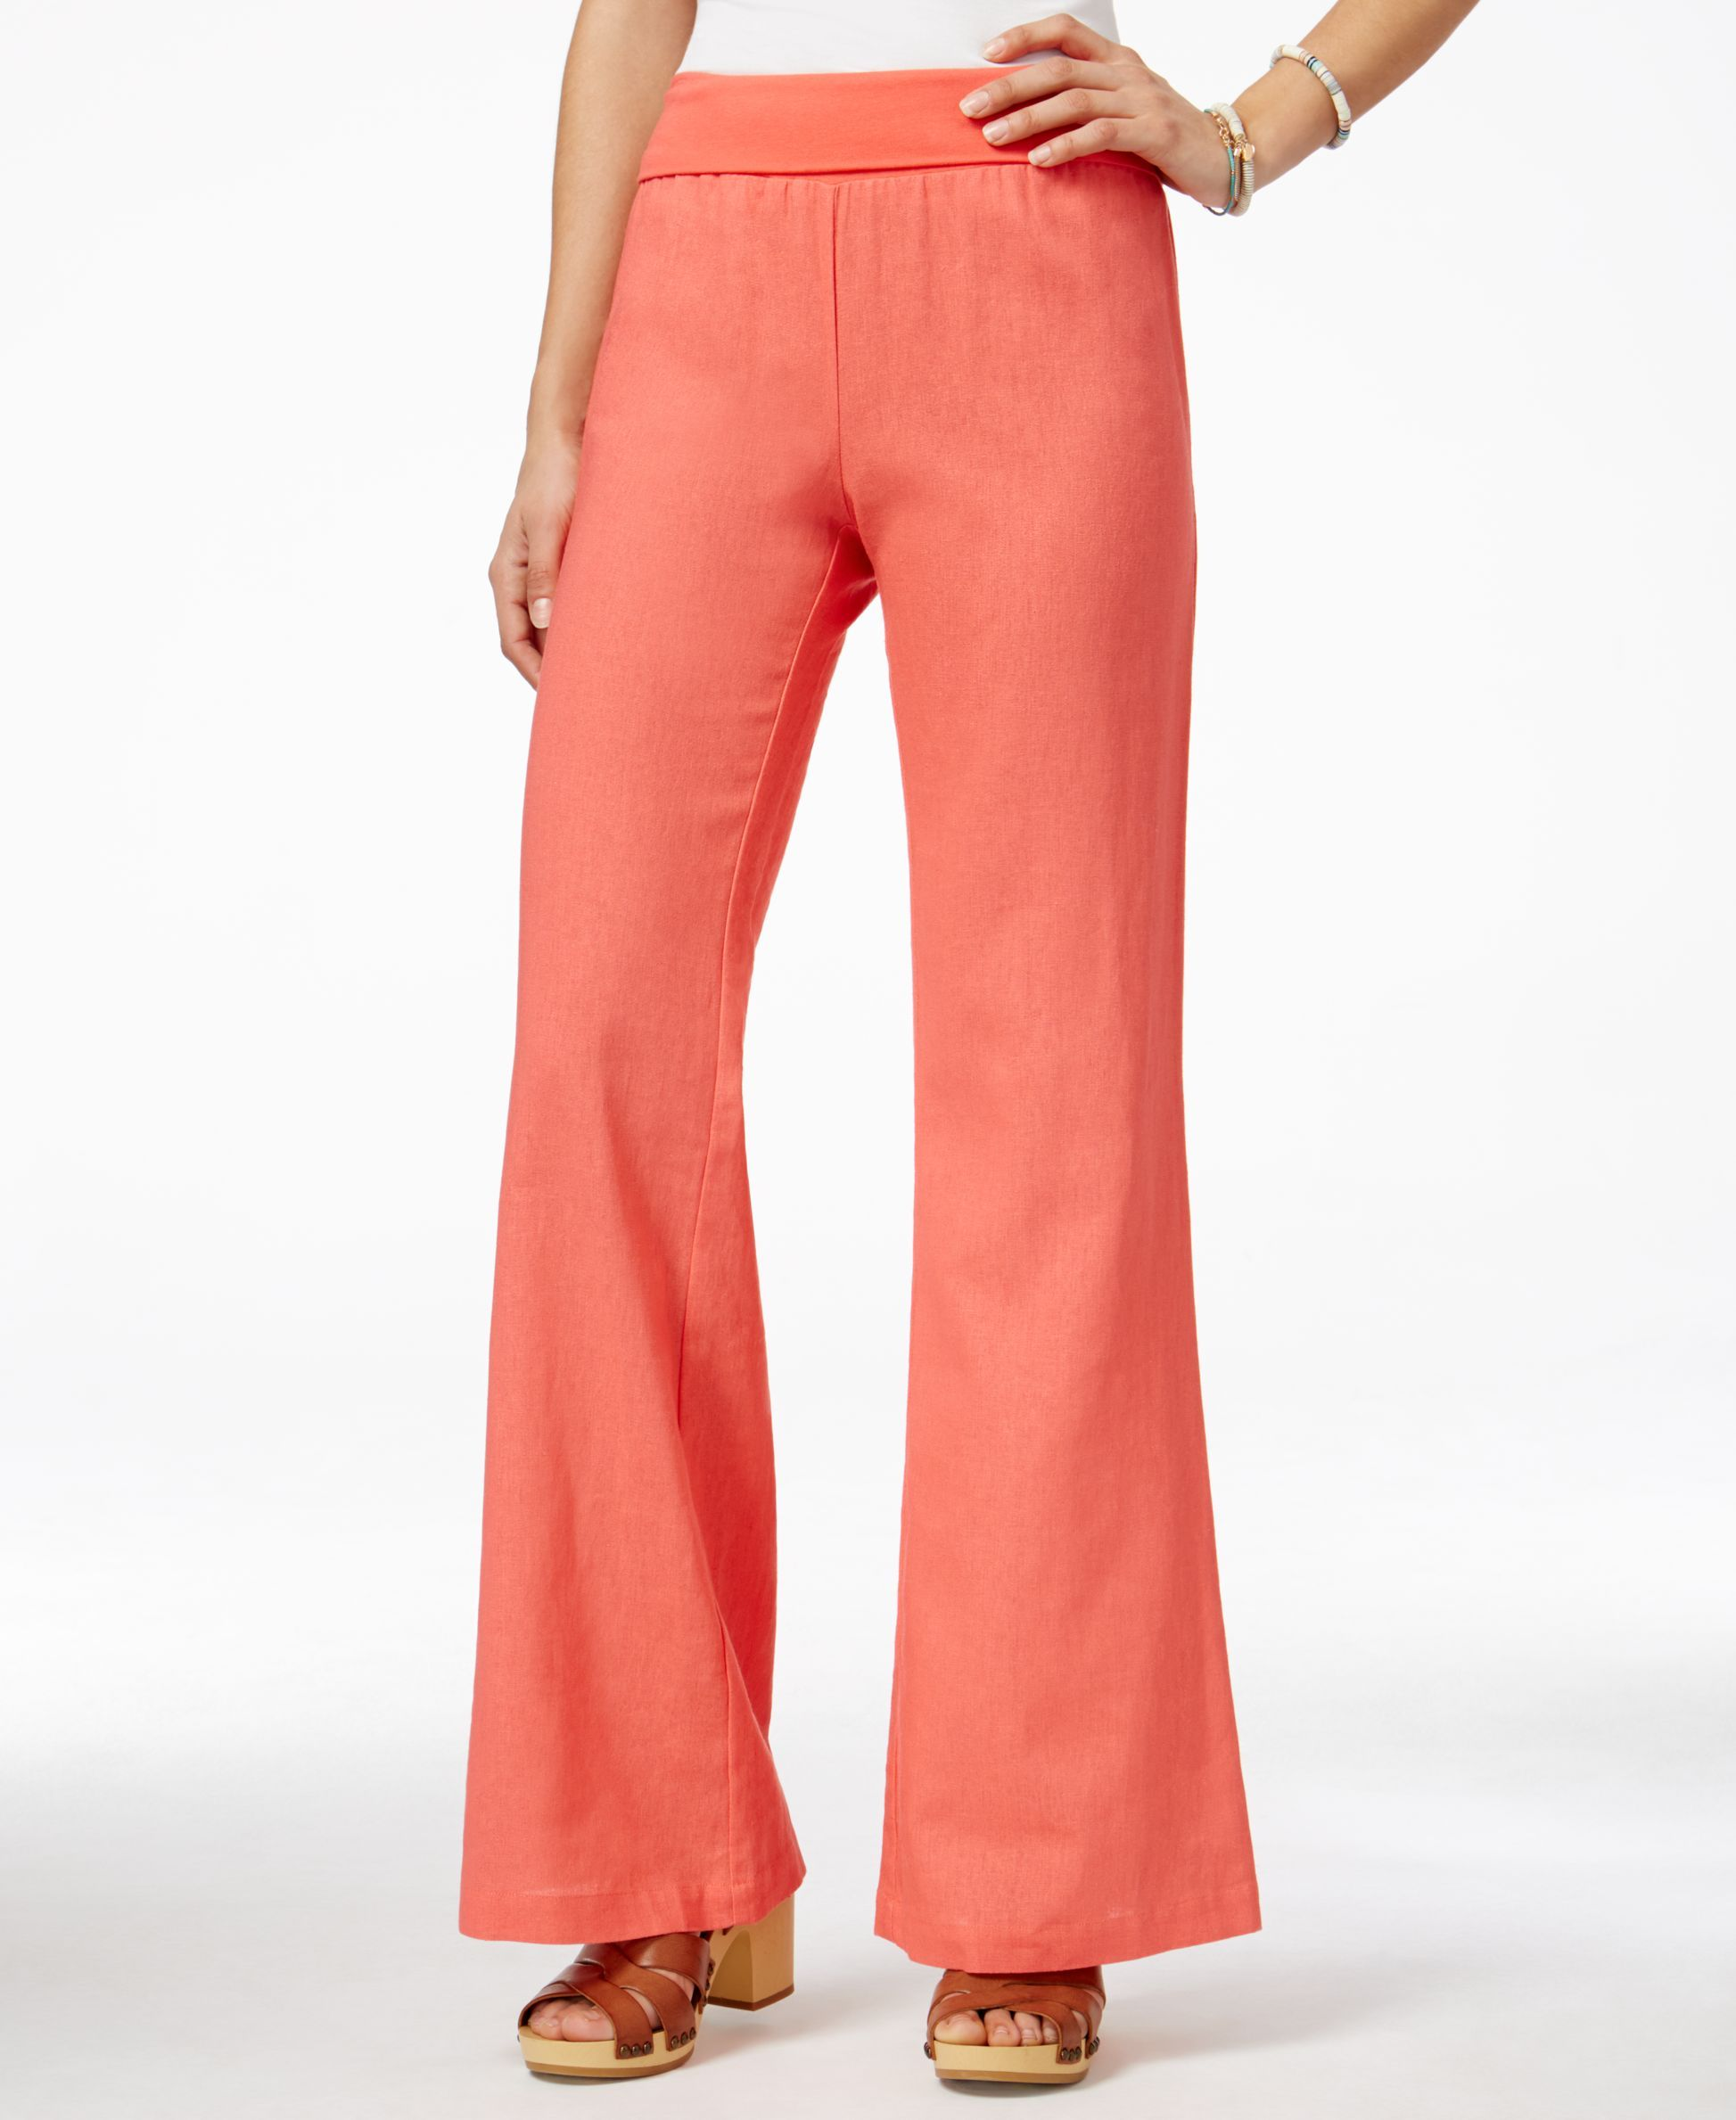 Stoosh Juniors' Linen Pant | Products | Pinterest | Shops, Pants ...